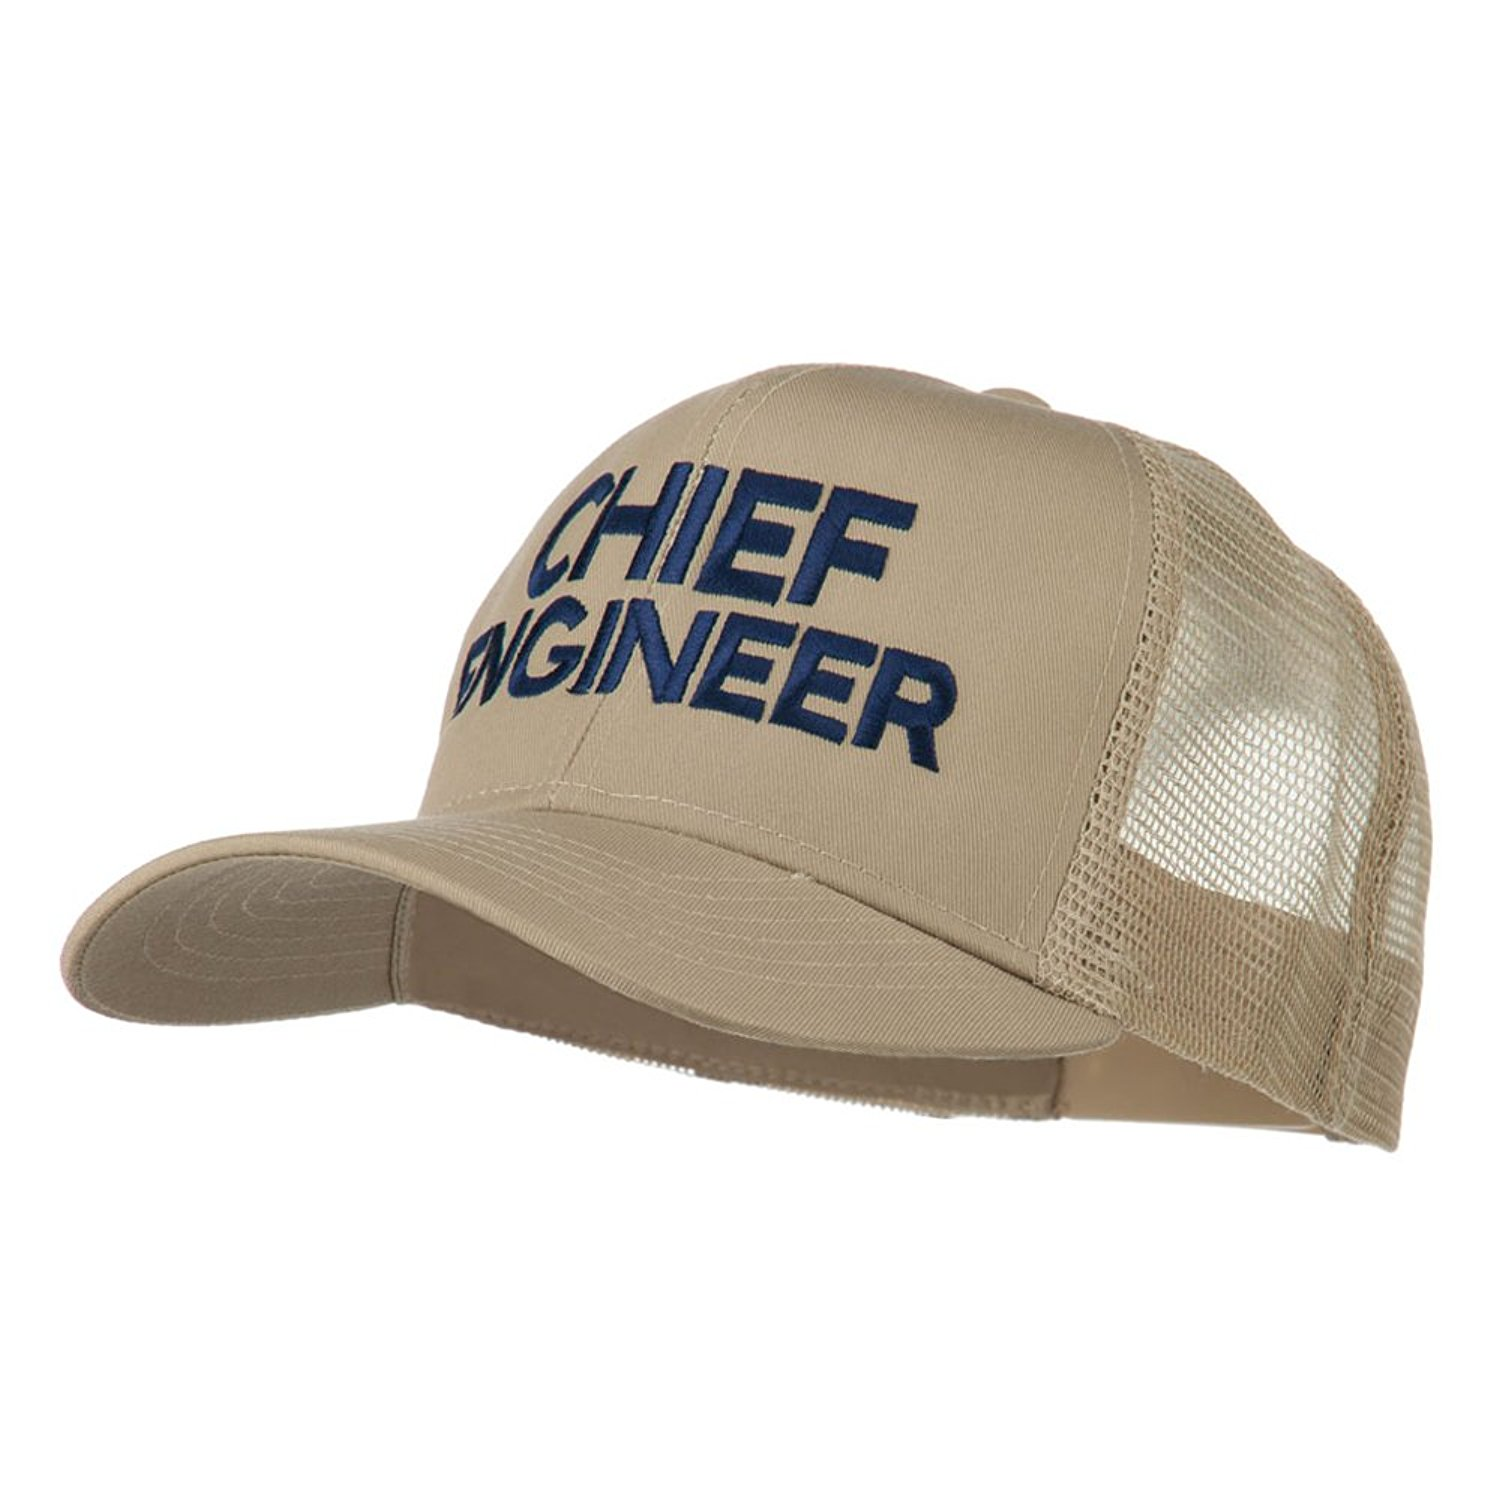 d3f2715a693 Get Quotations · Chief Engineer Embroidered Twill Mesh Cap - Khaki